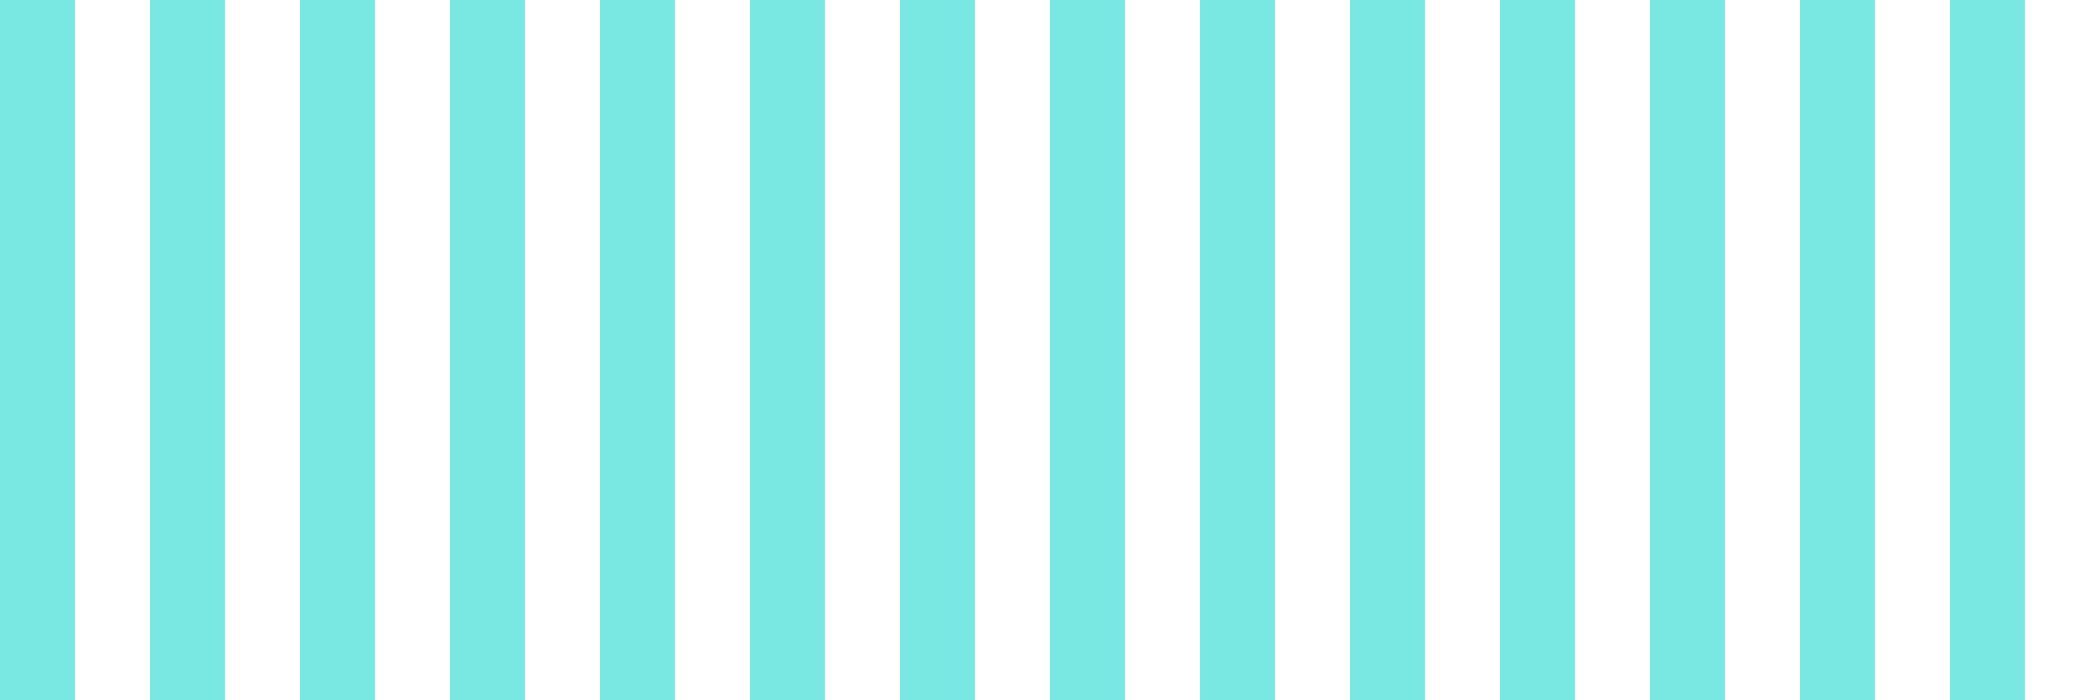 Wallpaper Turquoise White